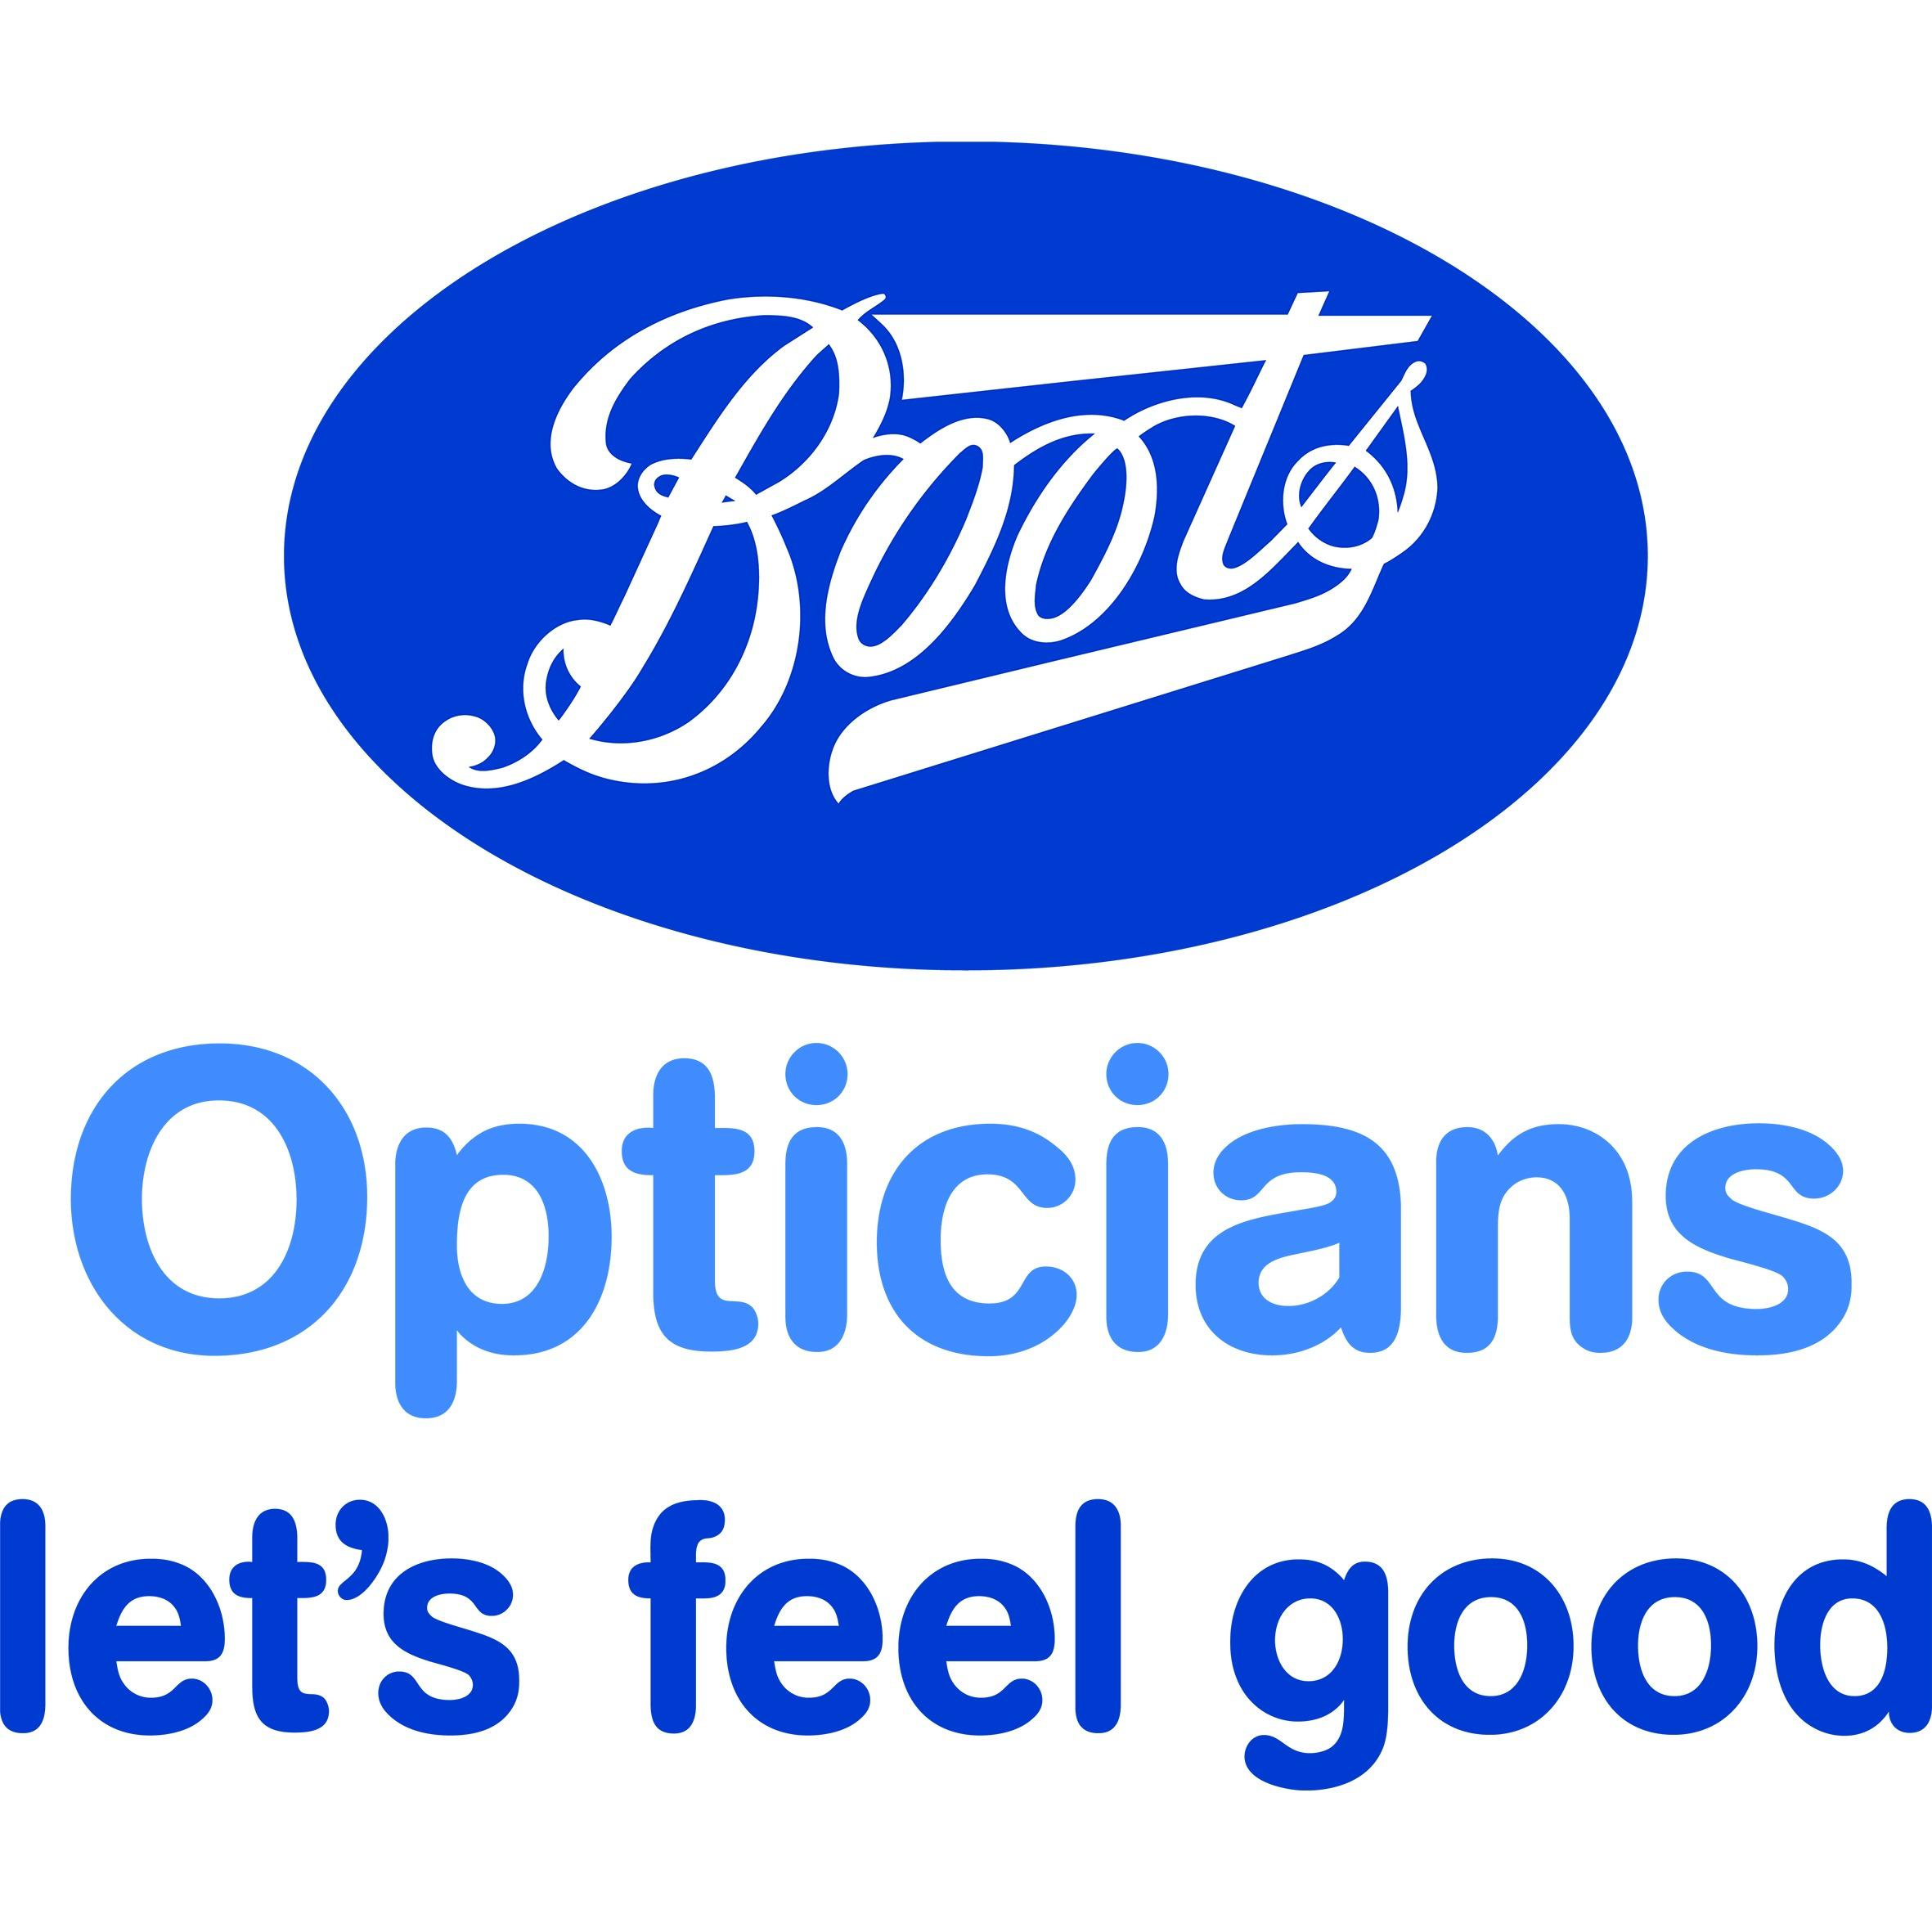 Boots Opticians - Croydon, London CR7 6AR - 020 8689 5565 | ShowMeLocal.com